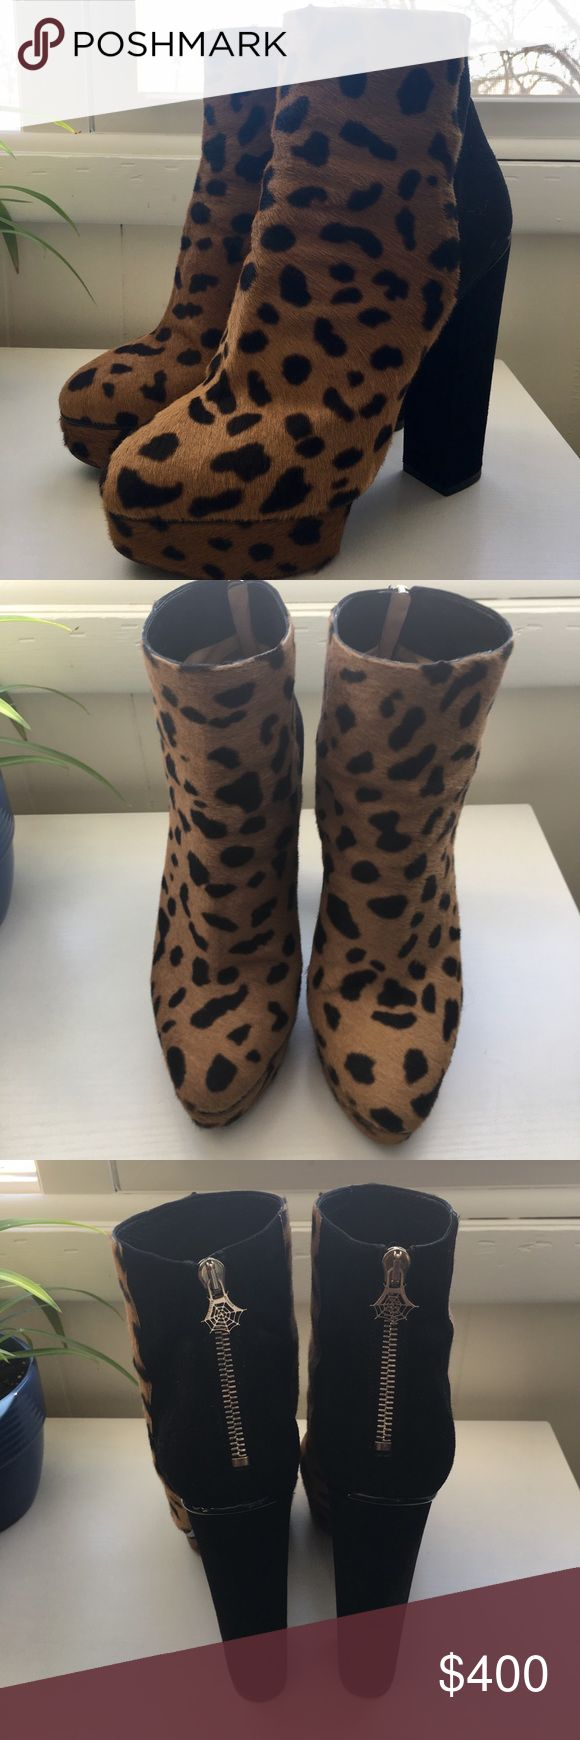 Charlotte Olympia 'Valerie' Leopard Calf Boots It pains me to sell these, but they are a bit too small! Size 39, but fit more like an 8. Charlotte Olympia 'Valerie' leopard print calf hair and black suede. Zipper on back with spiderweb pull. Minor wear to soles and general scuffing to suede. Leather lining is popping up in one. No box or dust bags. Charlotte Olympia Shoes Ankle Boots & Booties